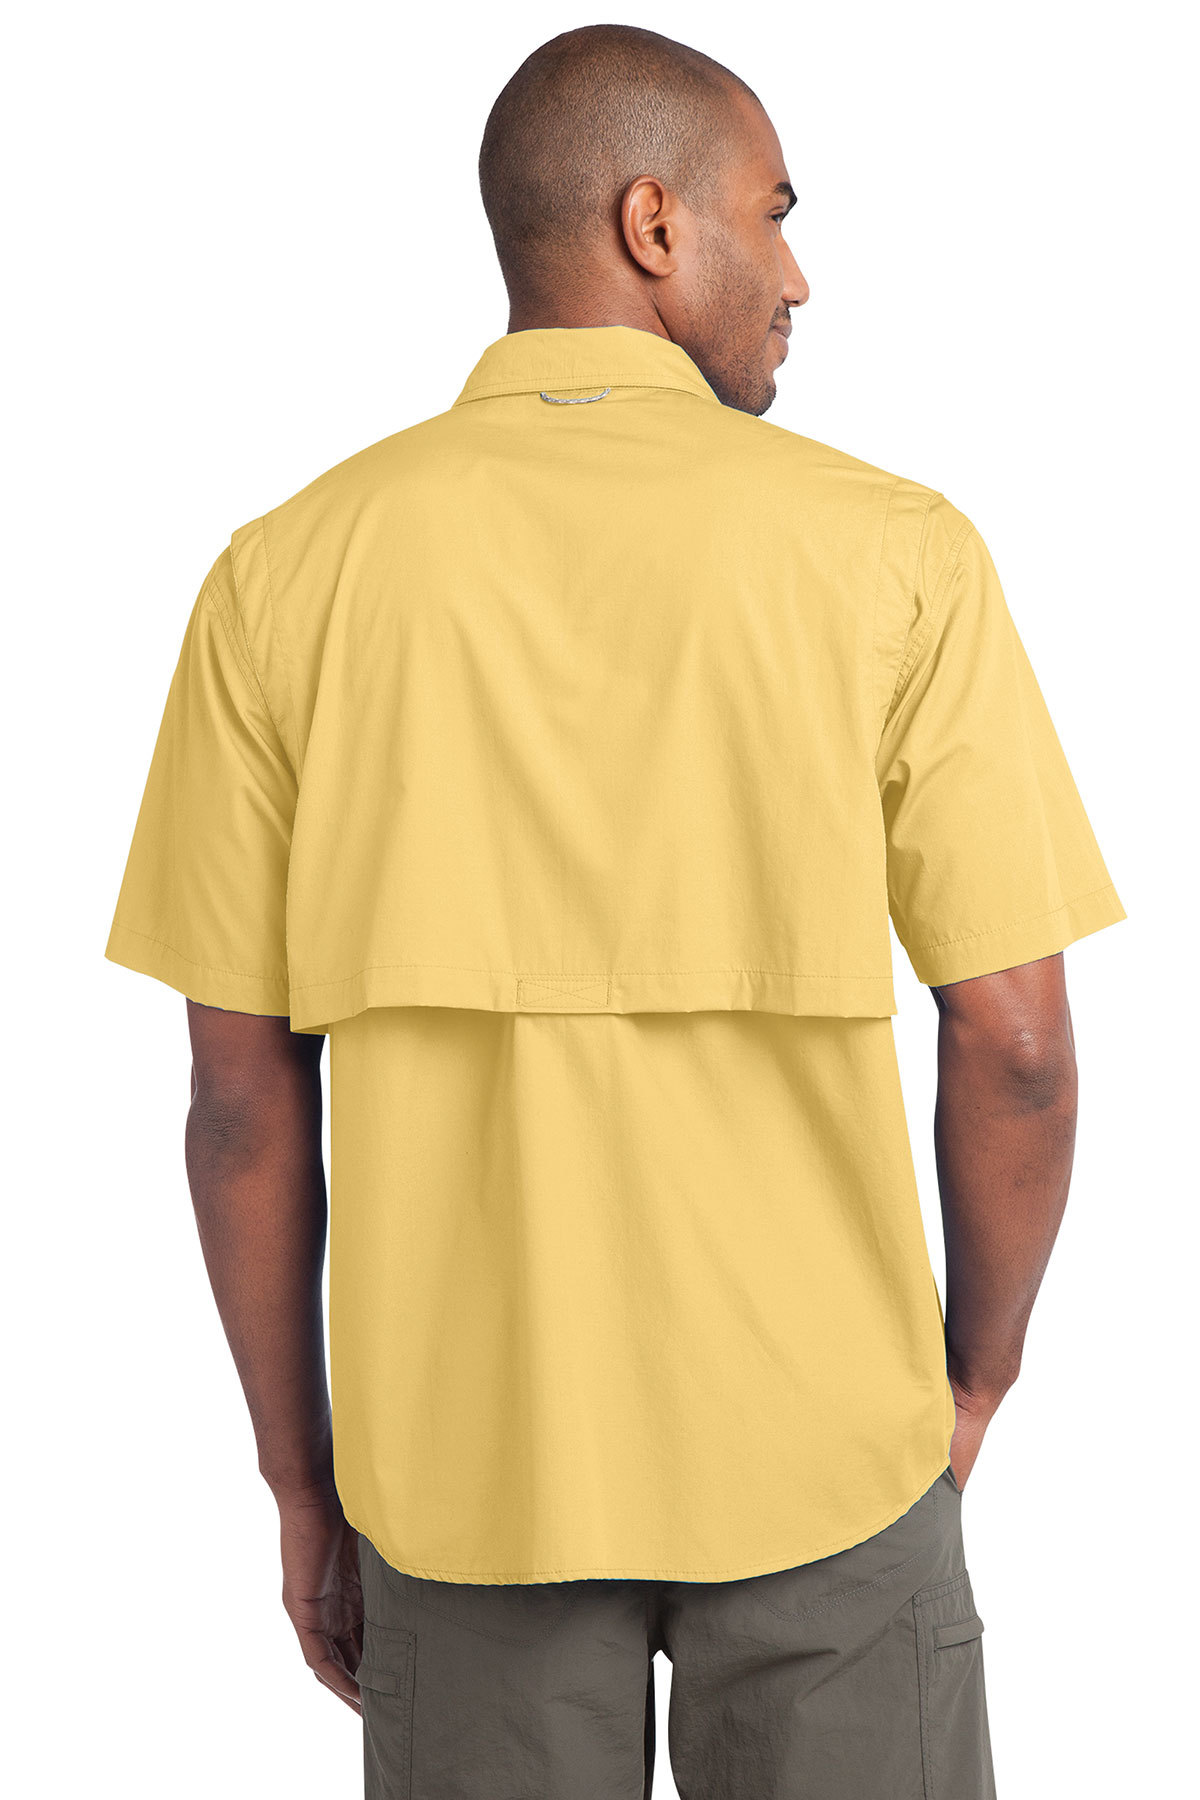 Ed Bauer Short Sleeve Fishing Shirt Fishing